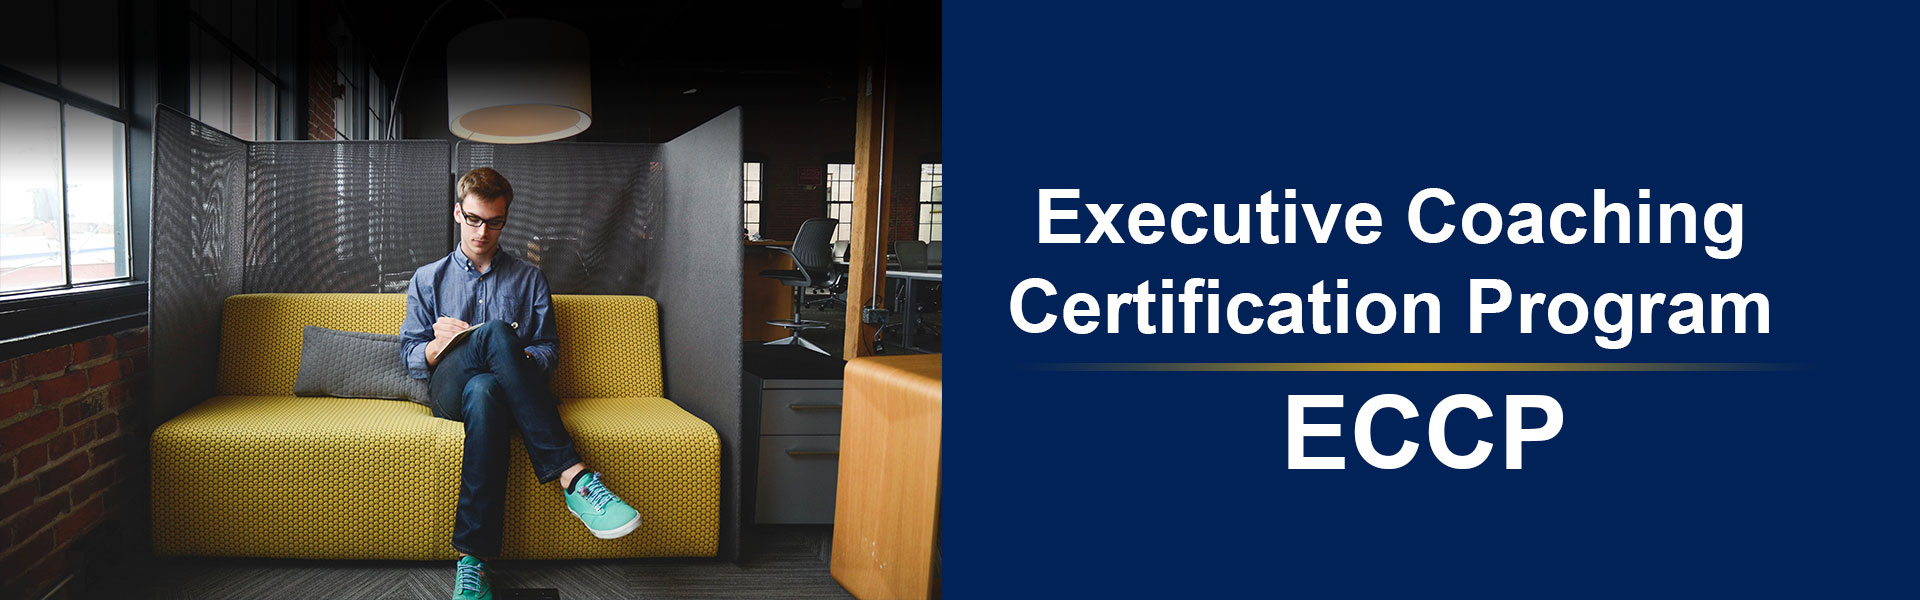 Executive Coaching Certification Program Eccp